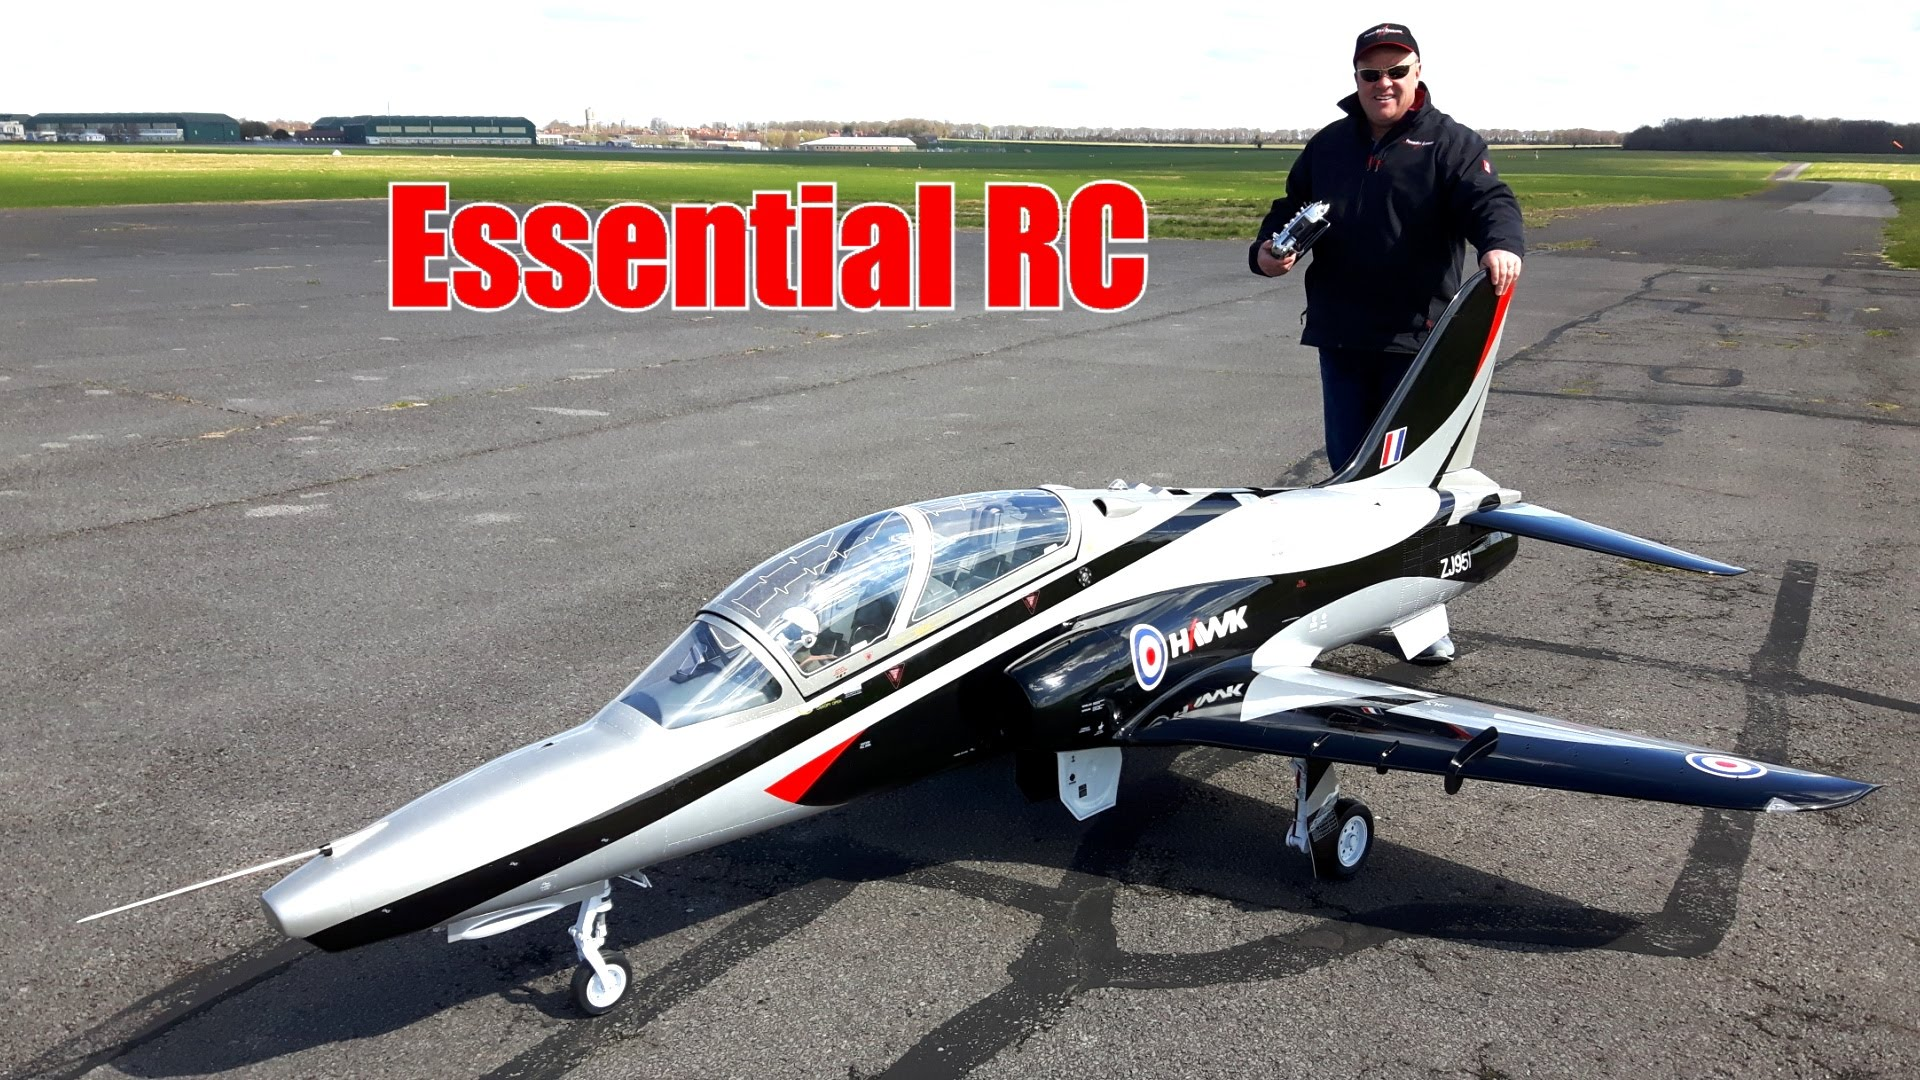 Incredible Scaled RC Turbine Fighter Jet Dominates The Sky!